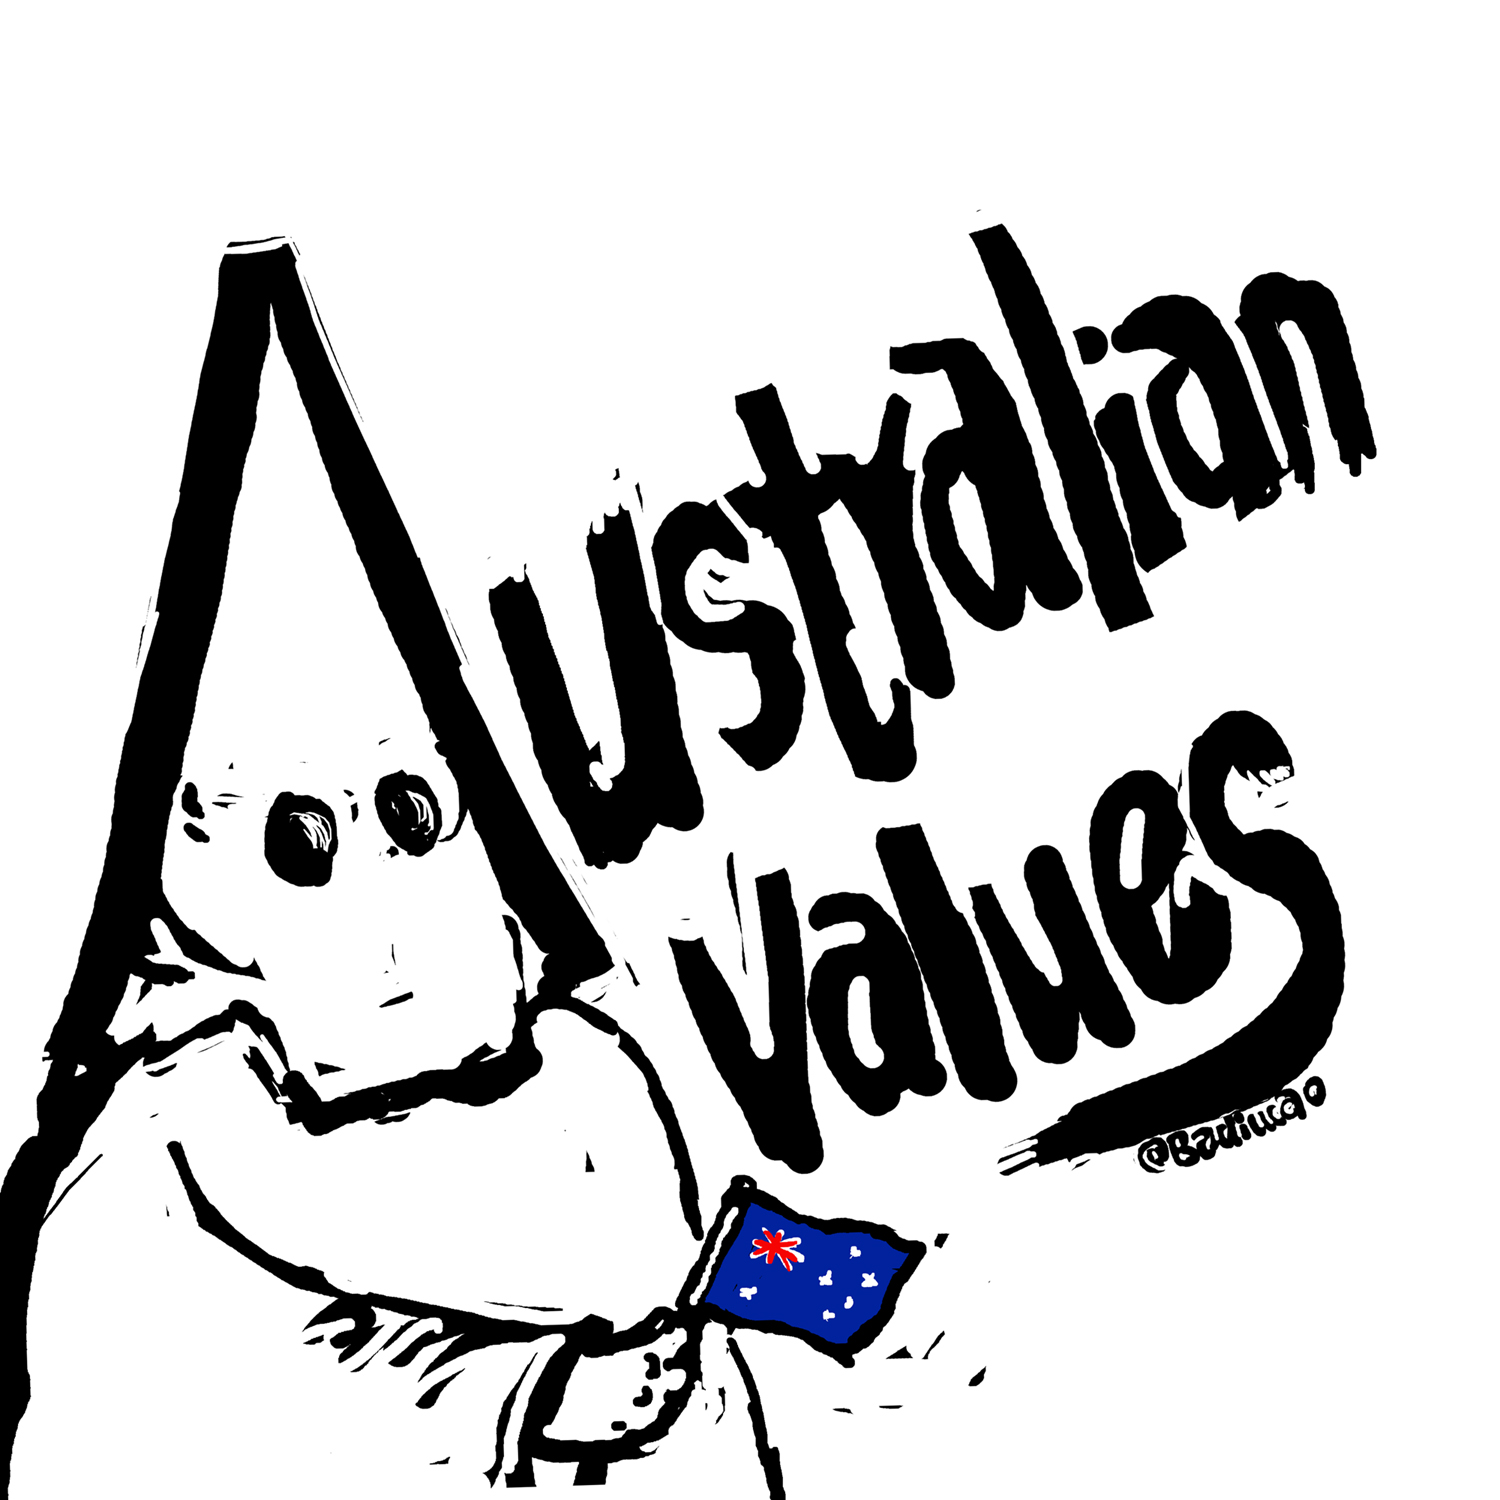 AustralianValues